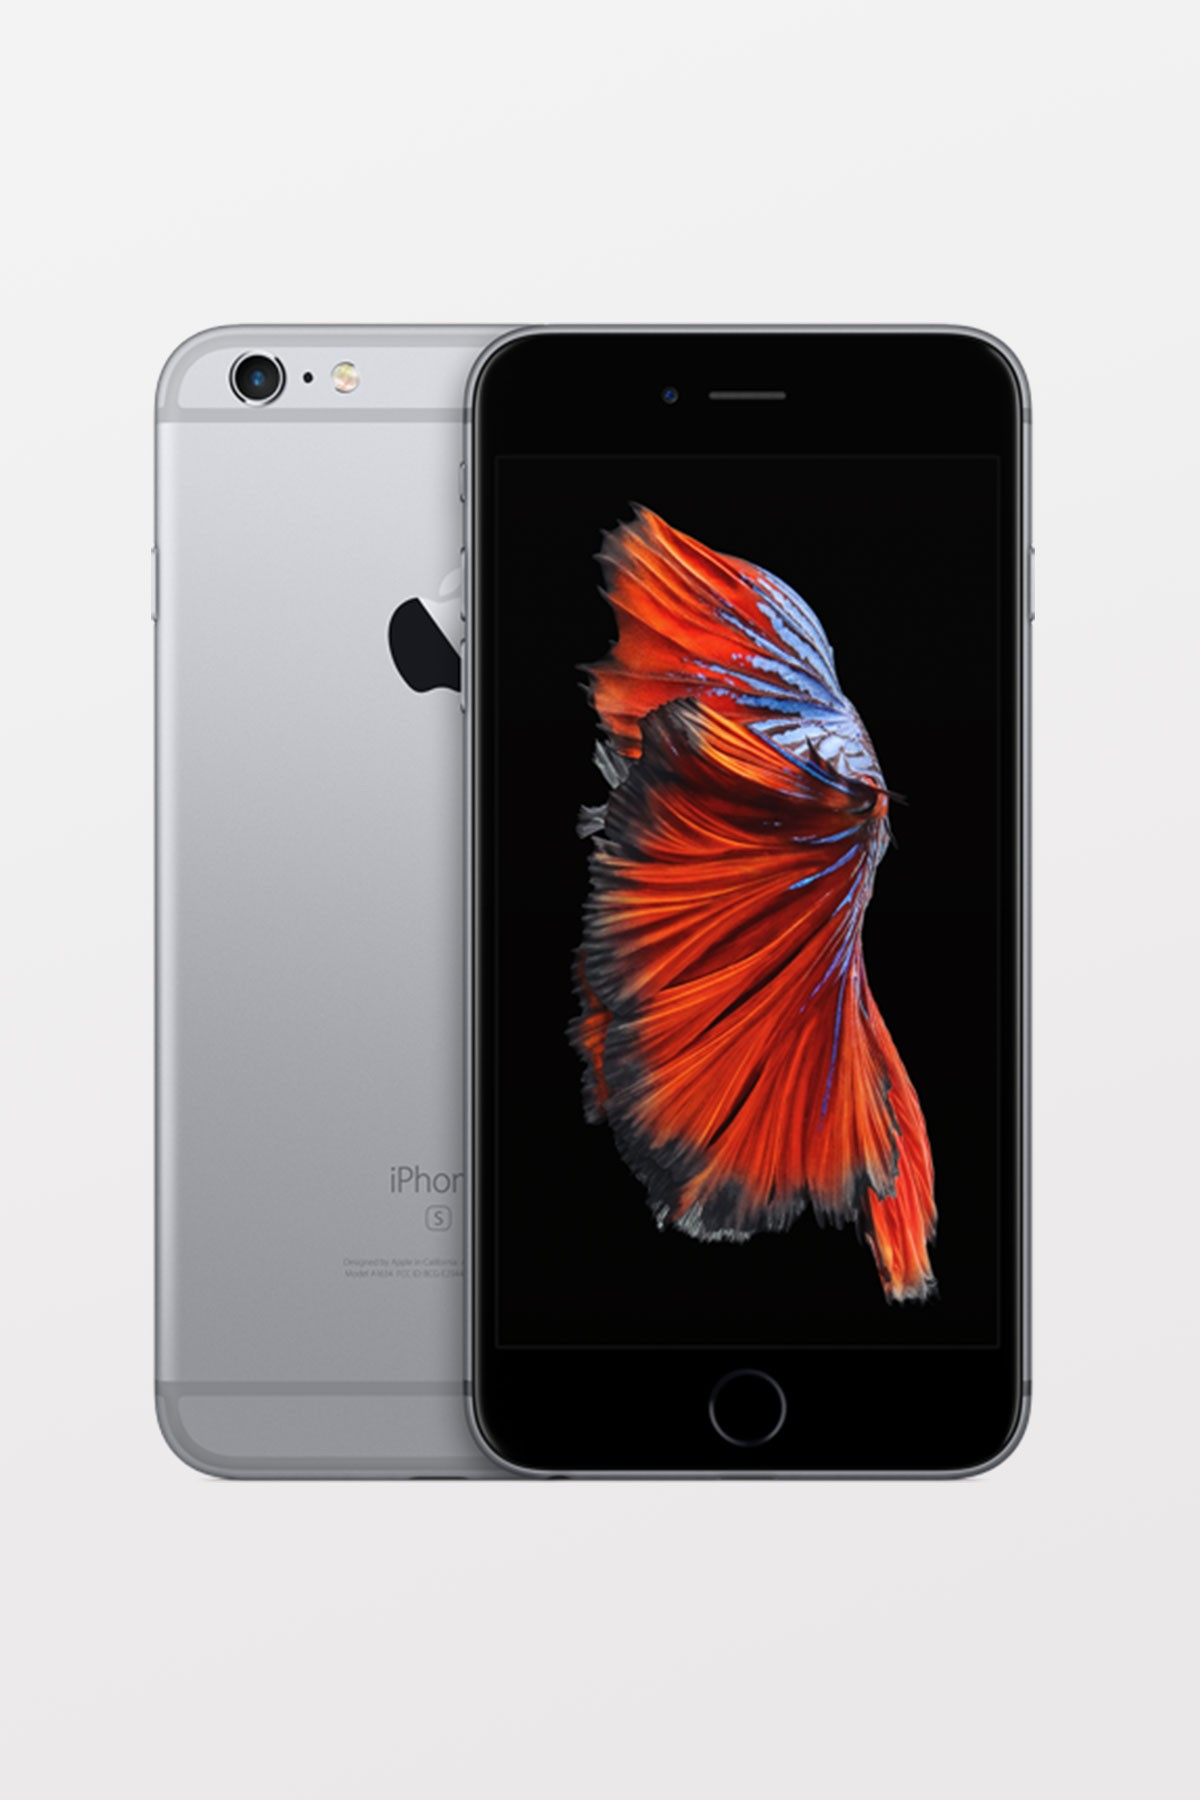 Apple iPhone 6S Plus 128GB - Space Grey - Refurbished